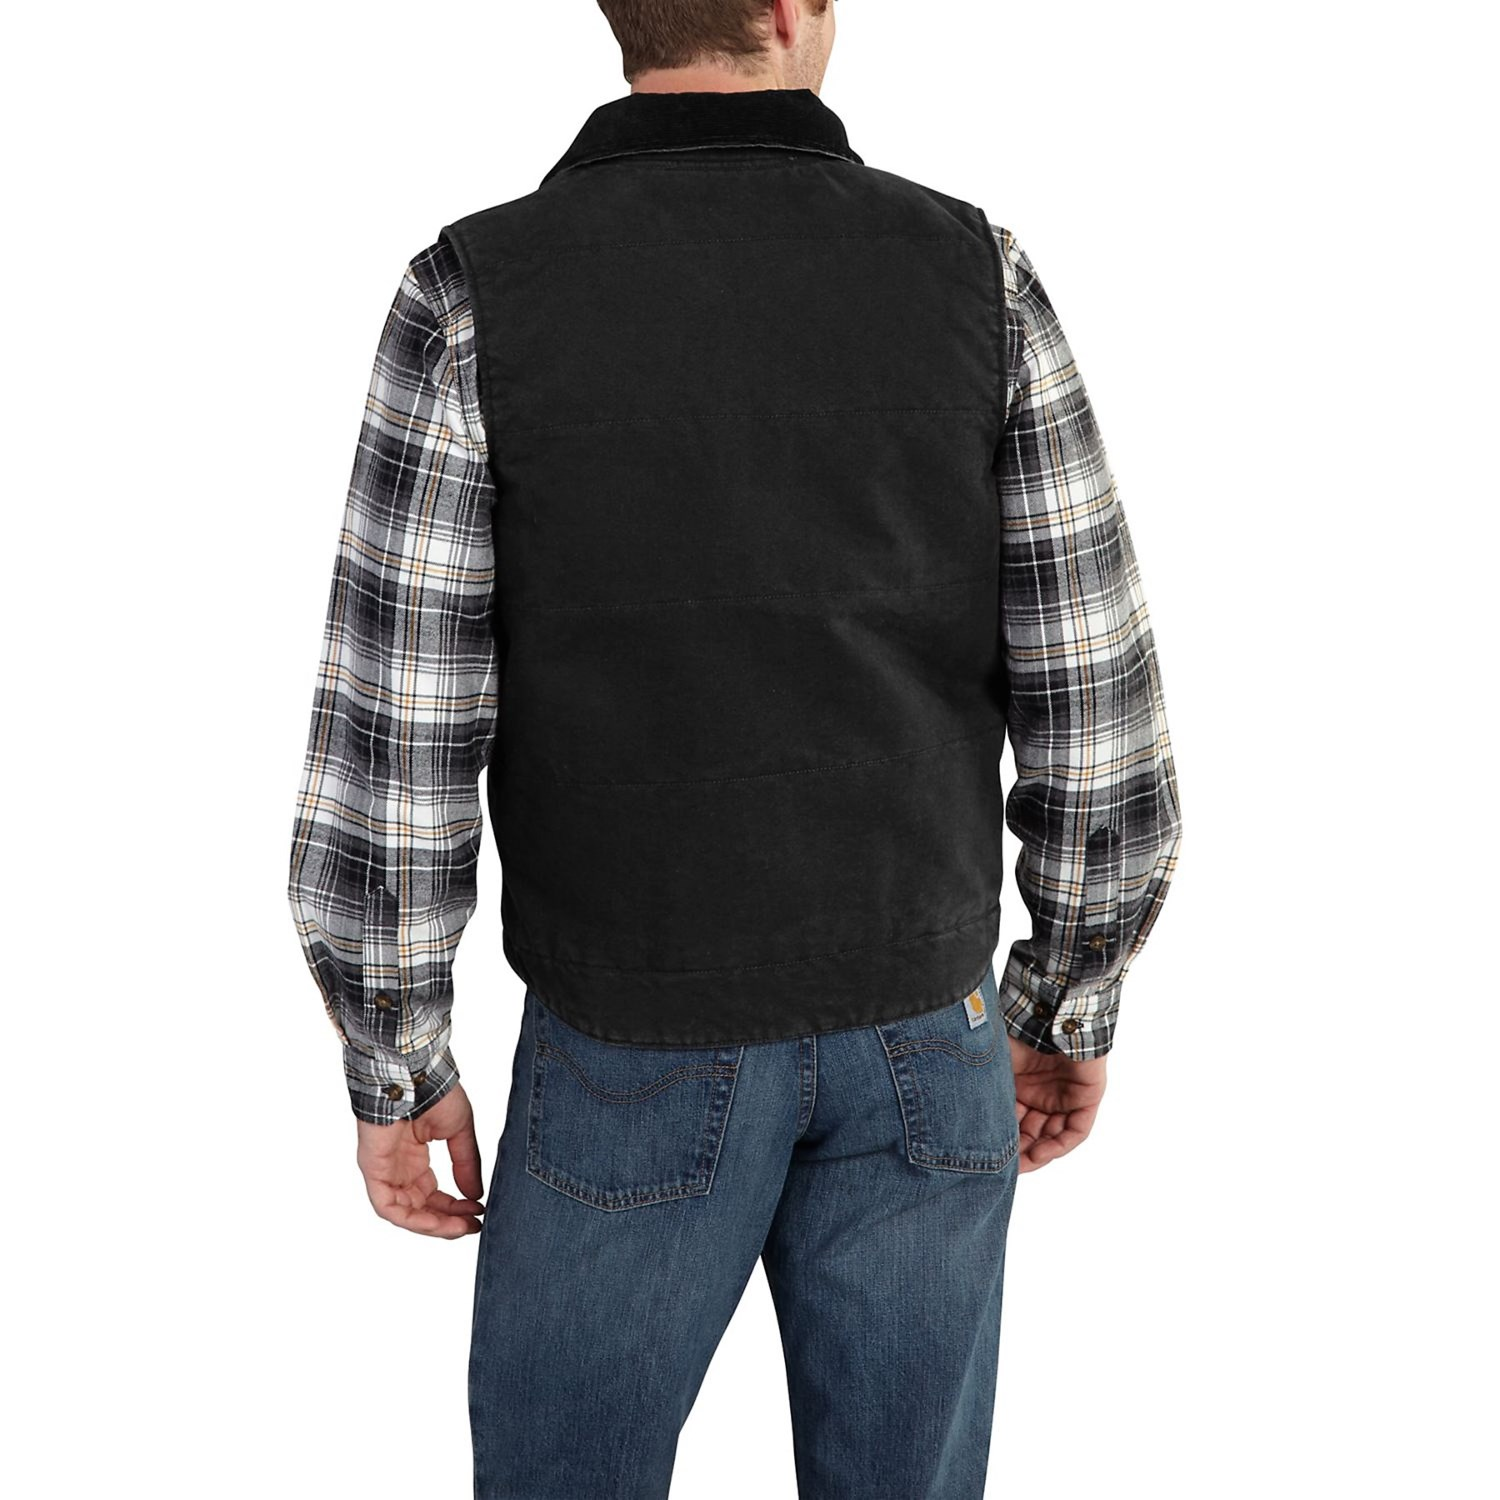 Pair a quilted, fleece lined-lined vest with dark jeans and stylish winter boots for a rugged look. From sleepwear and sweaters to dress pants and men's activewear, Kmart has the men's big and tall clothing you need to stay in style all year round.